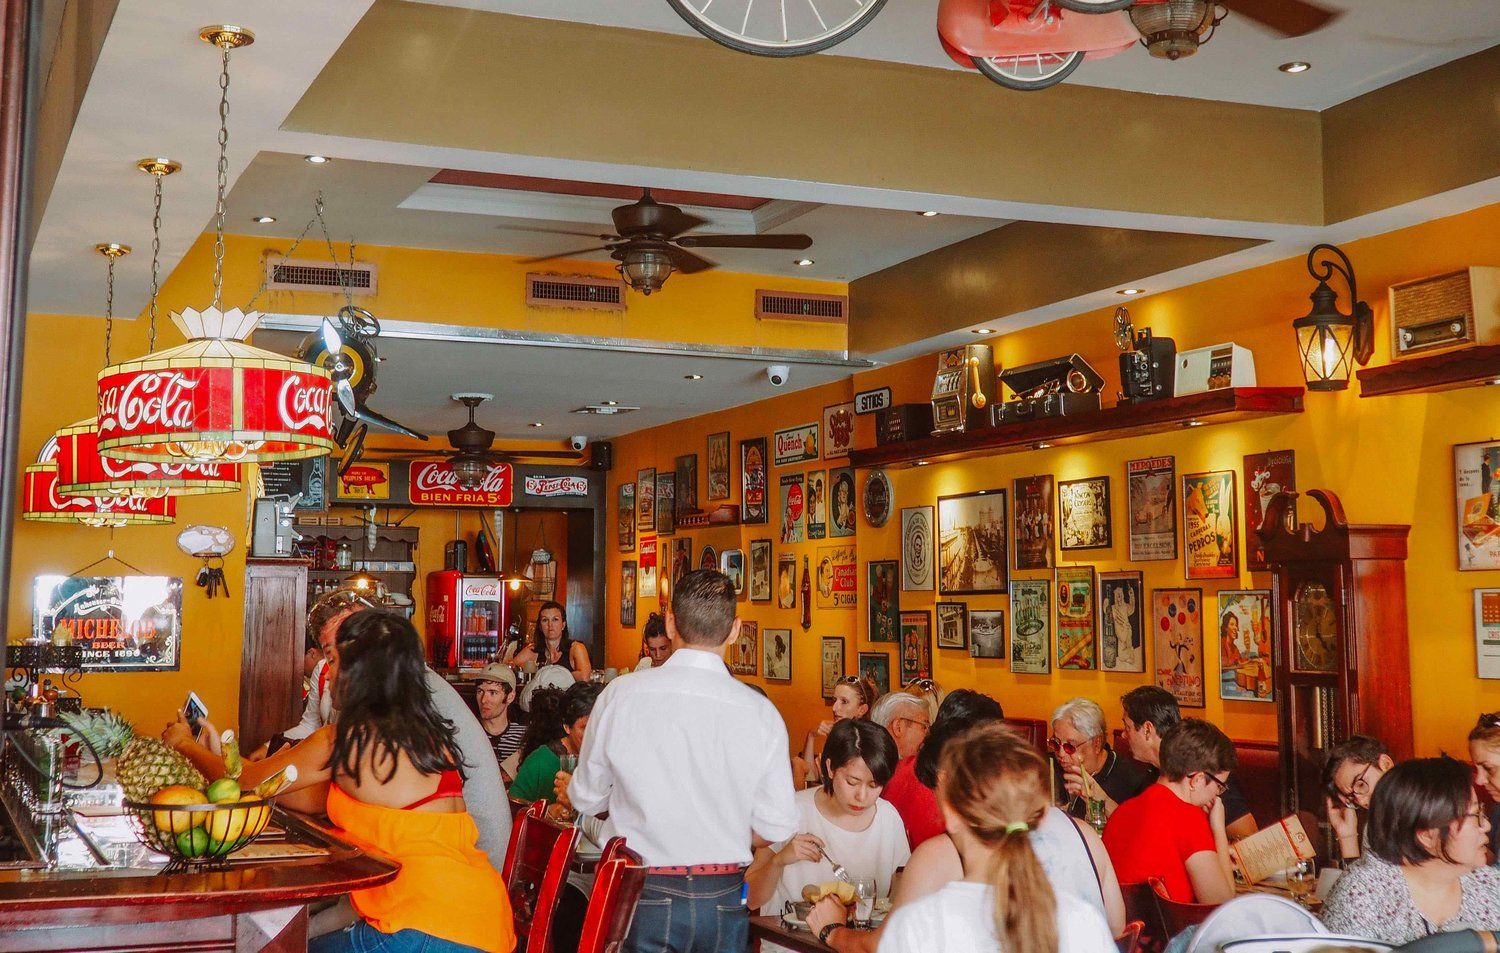 How To Make The Most Of Your Trip To Little Havana Little Havana